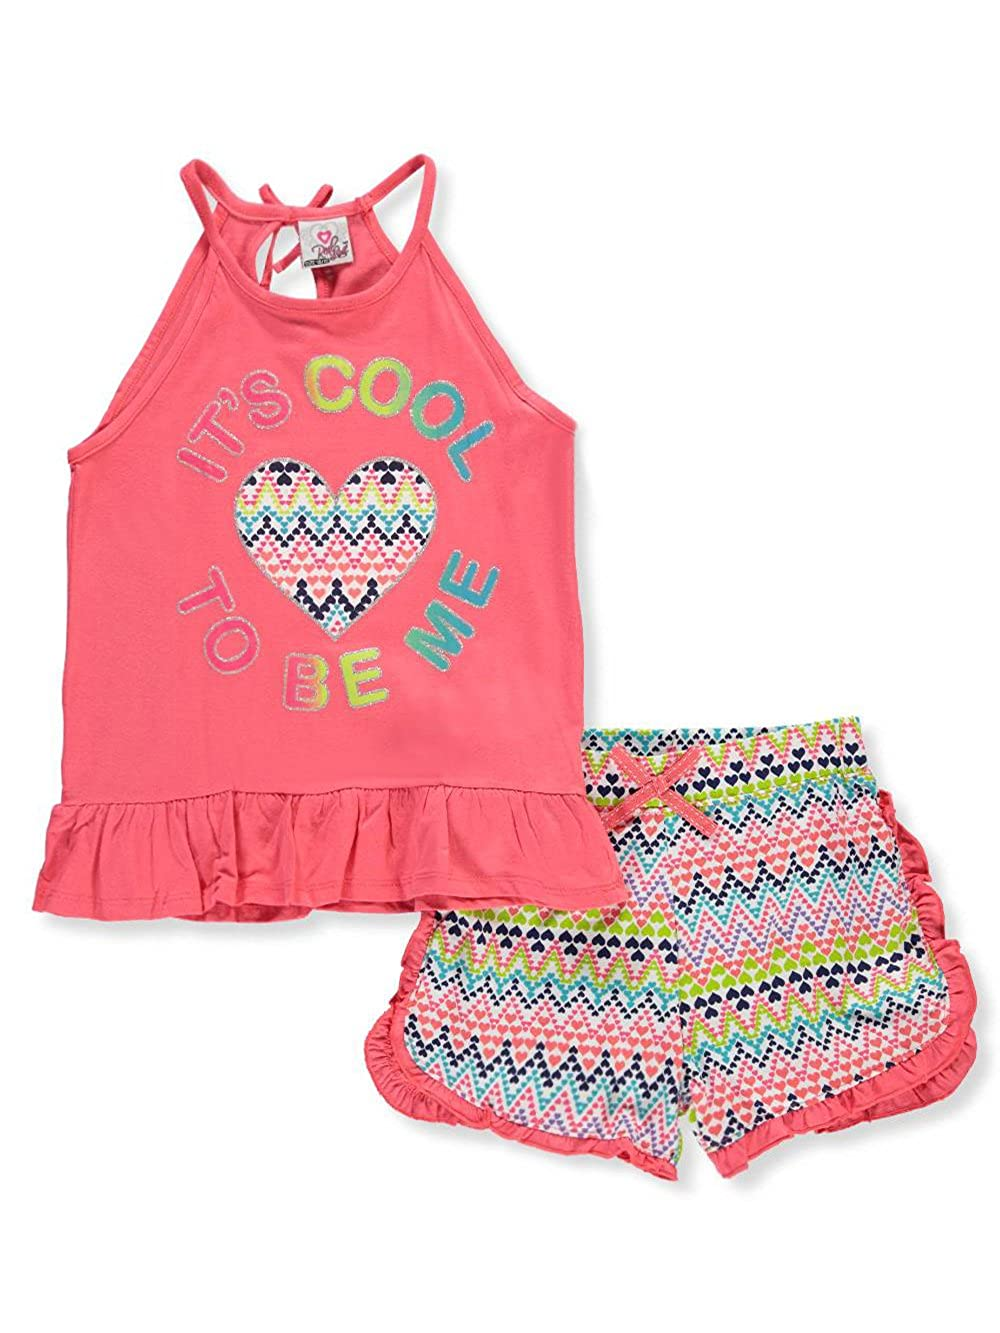 Real Love Girls 2-Piece Short Set Outfit